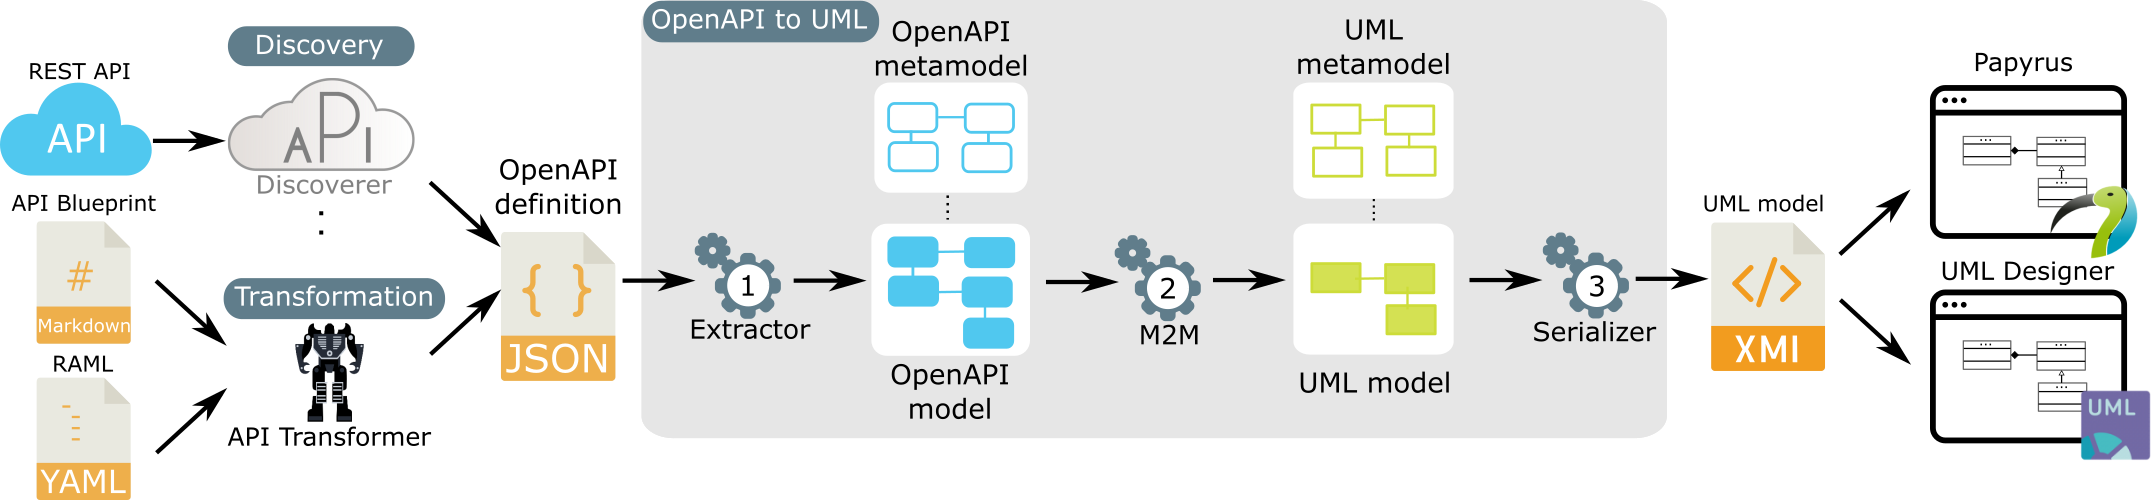 OpenAPI to UML transformation approach.